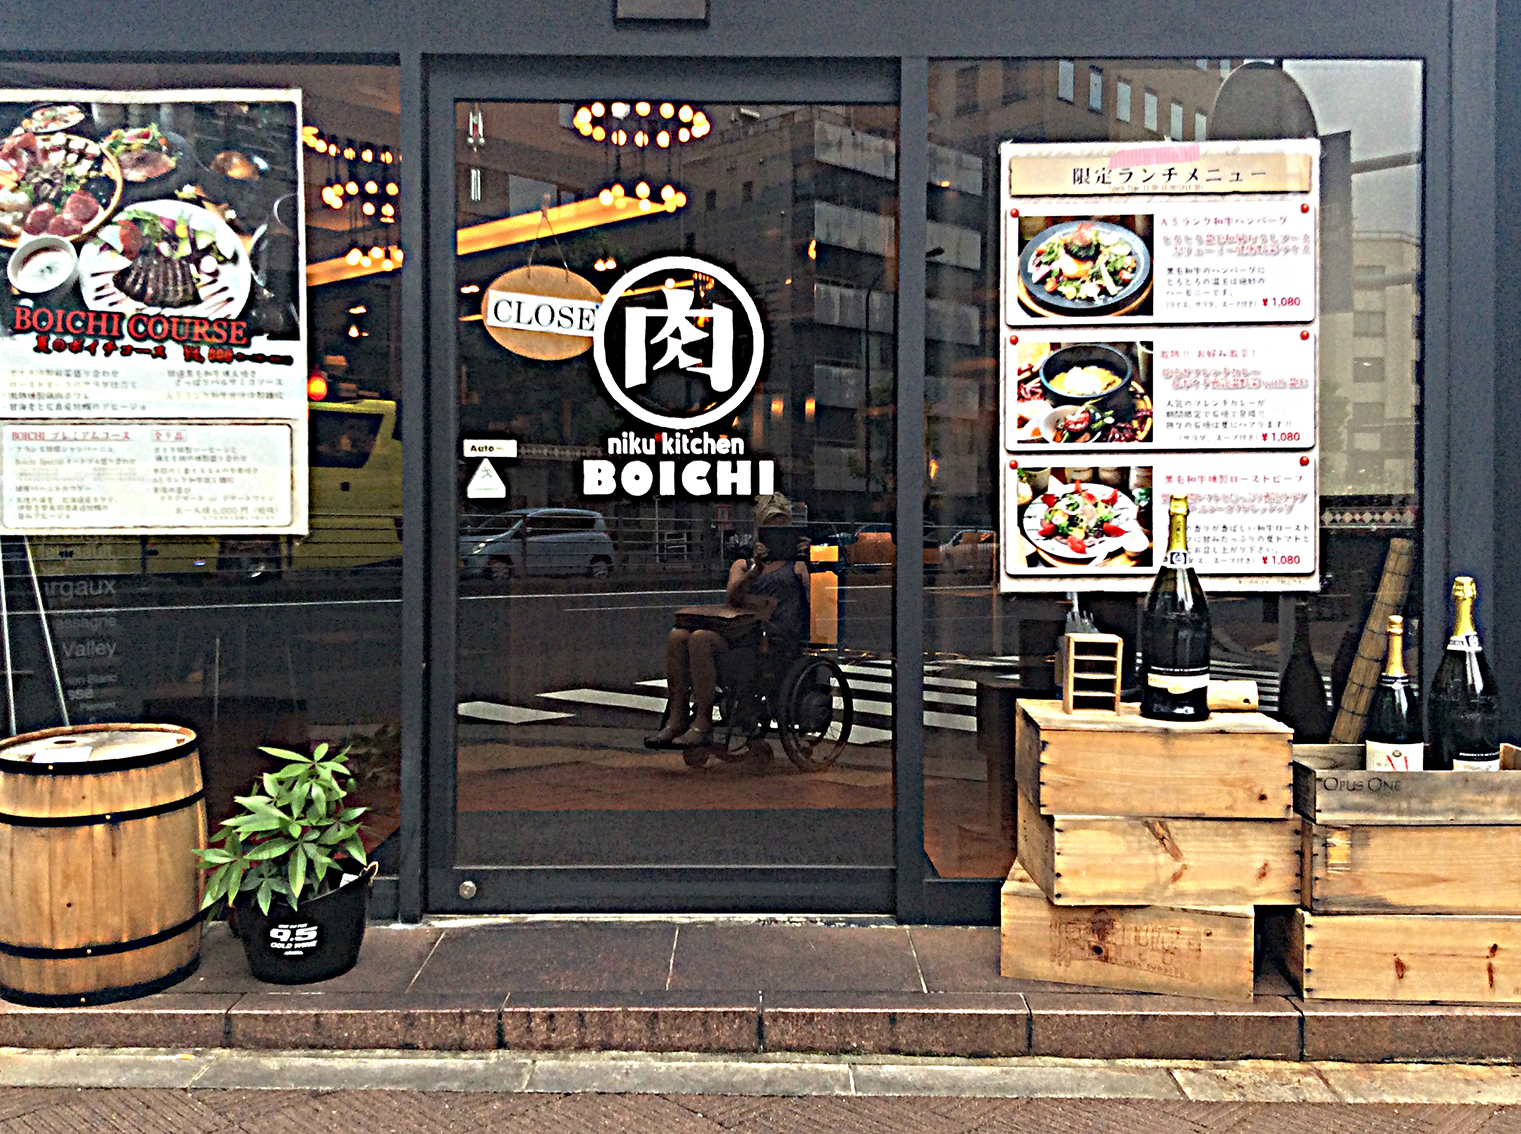 Tokyo is reflected in the glass door of this closed restaurant; large posters with menus are displayed on the windows each side of the door and a barrel, crates of wine bottles and a plant sit outside.